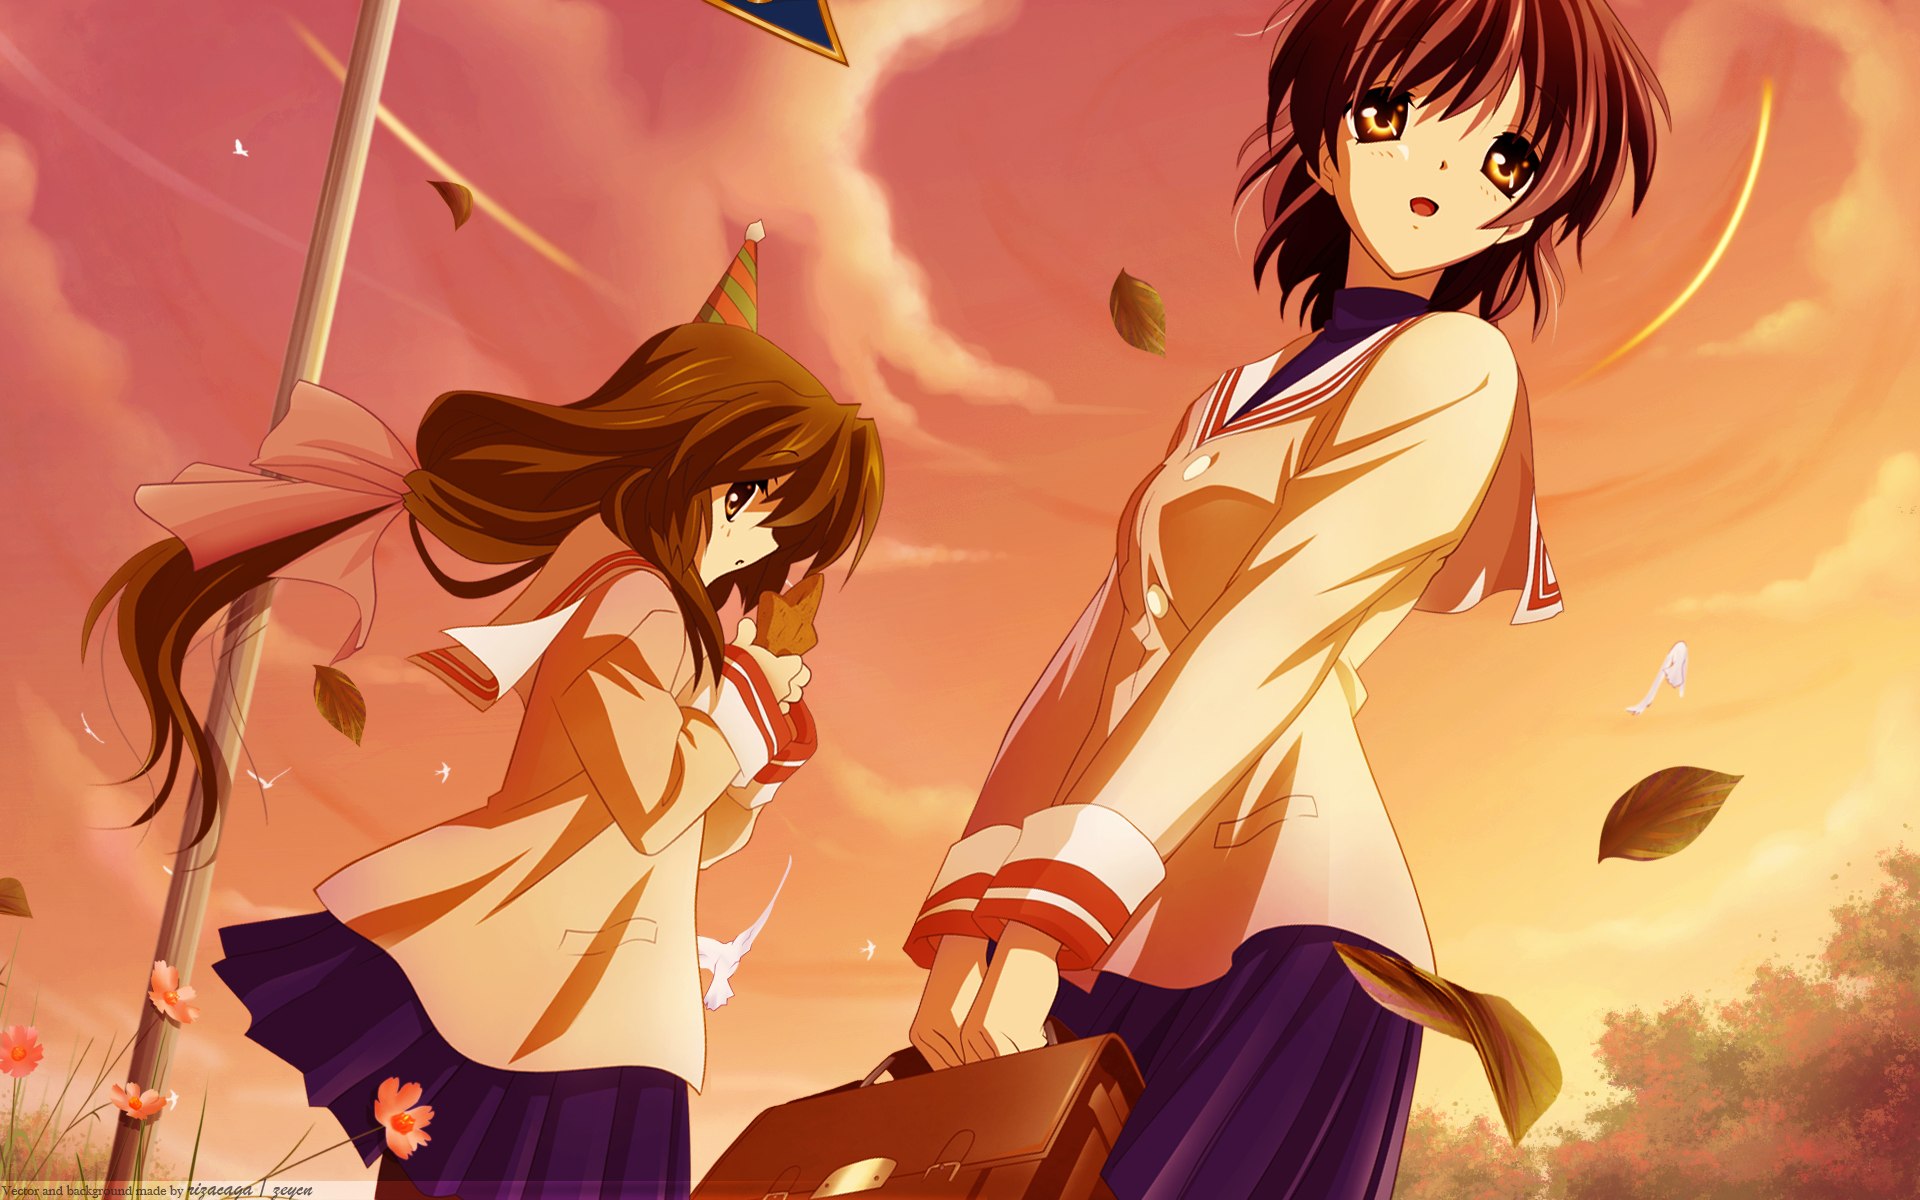 Clannad, Ibuki Fuko, Furukawa Nagisa, anime girls - desktop wallpaper